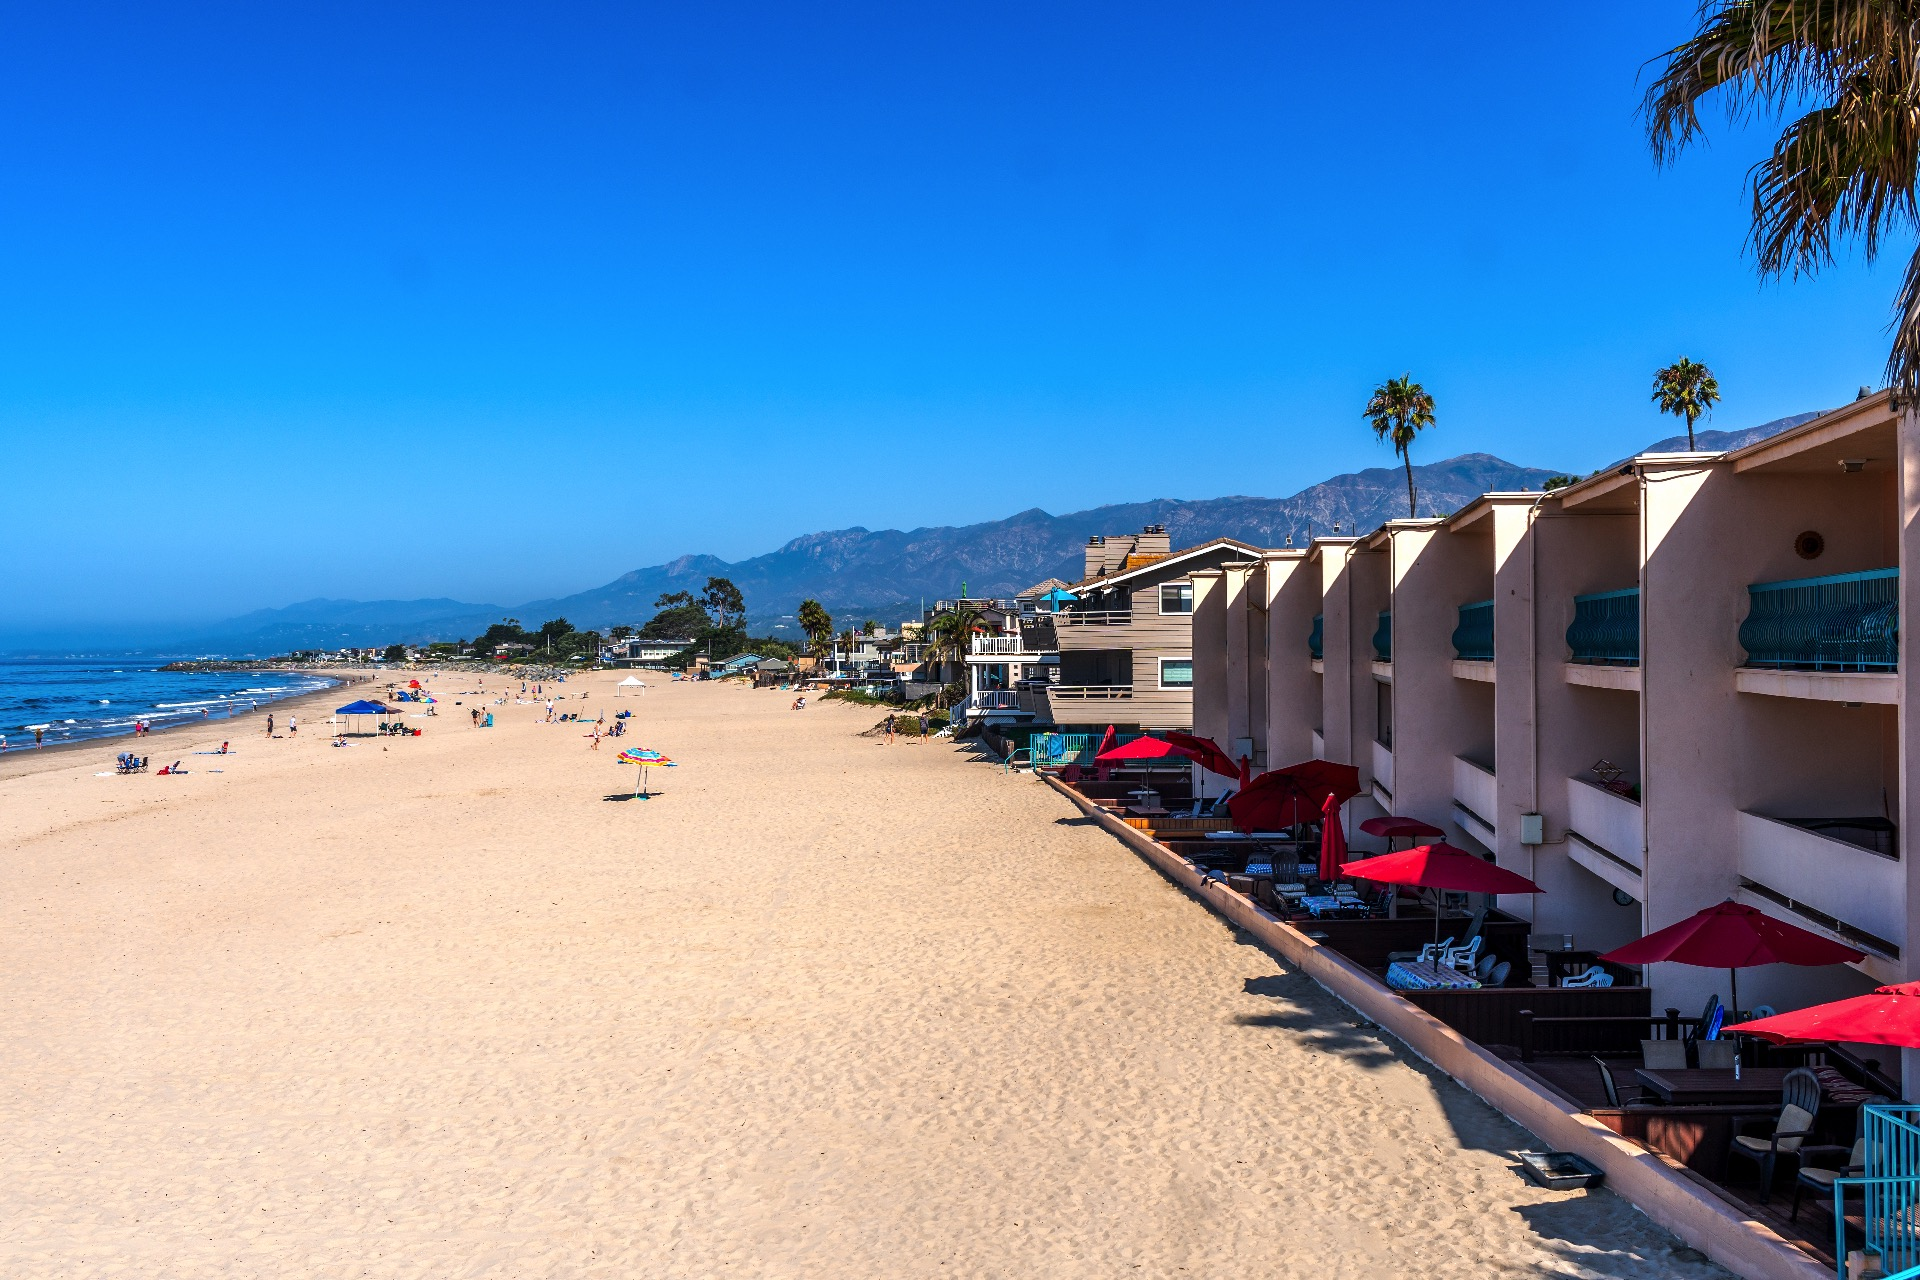 View of the Carpinteria Shores resort from the sand.